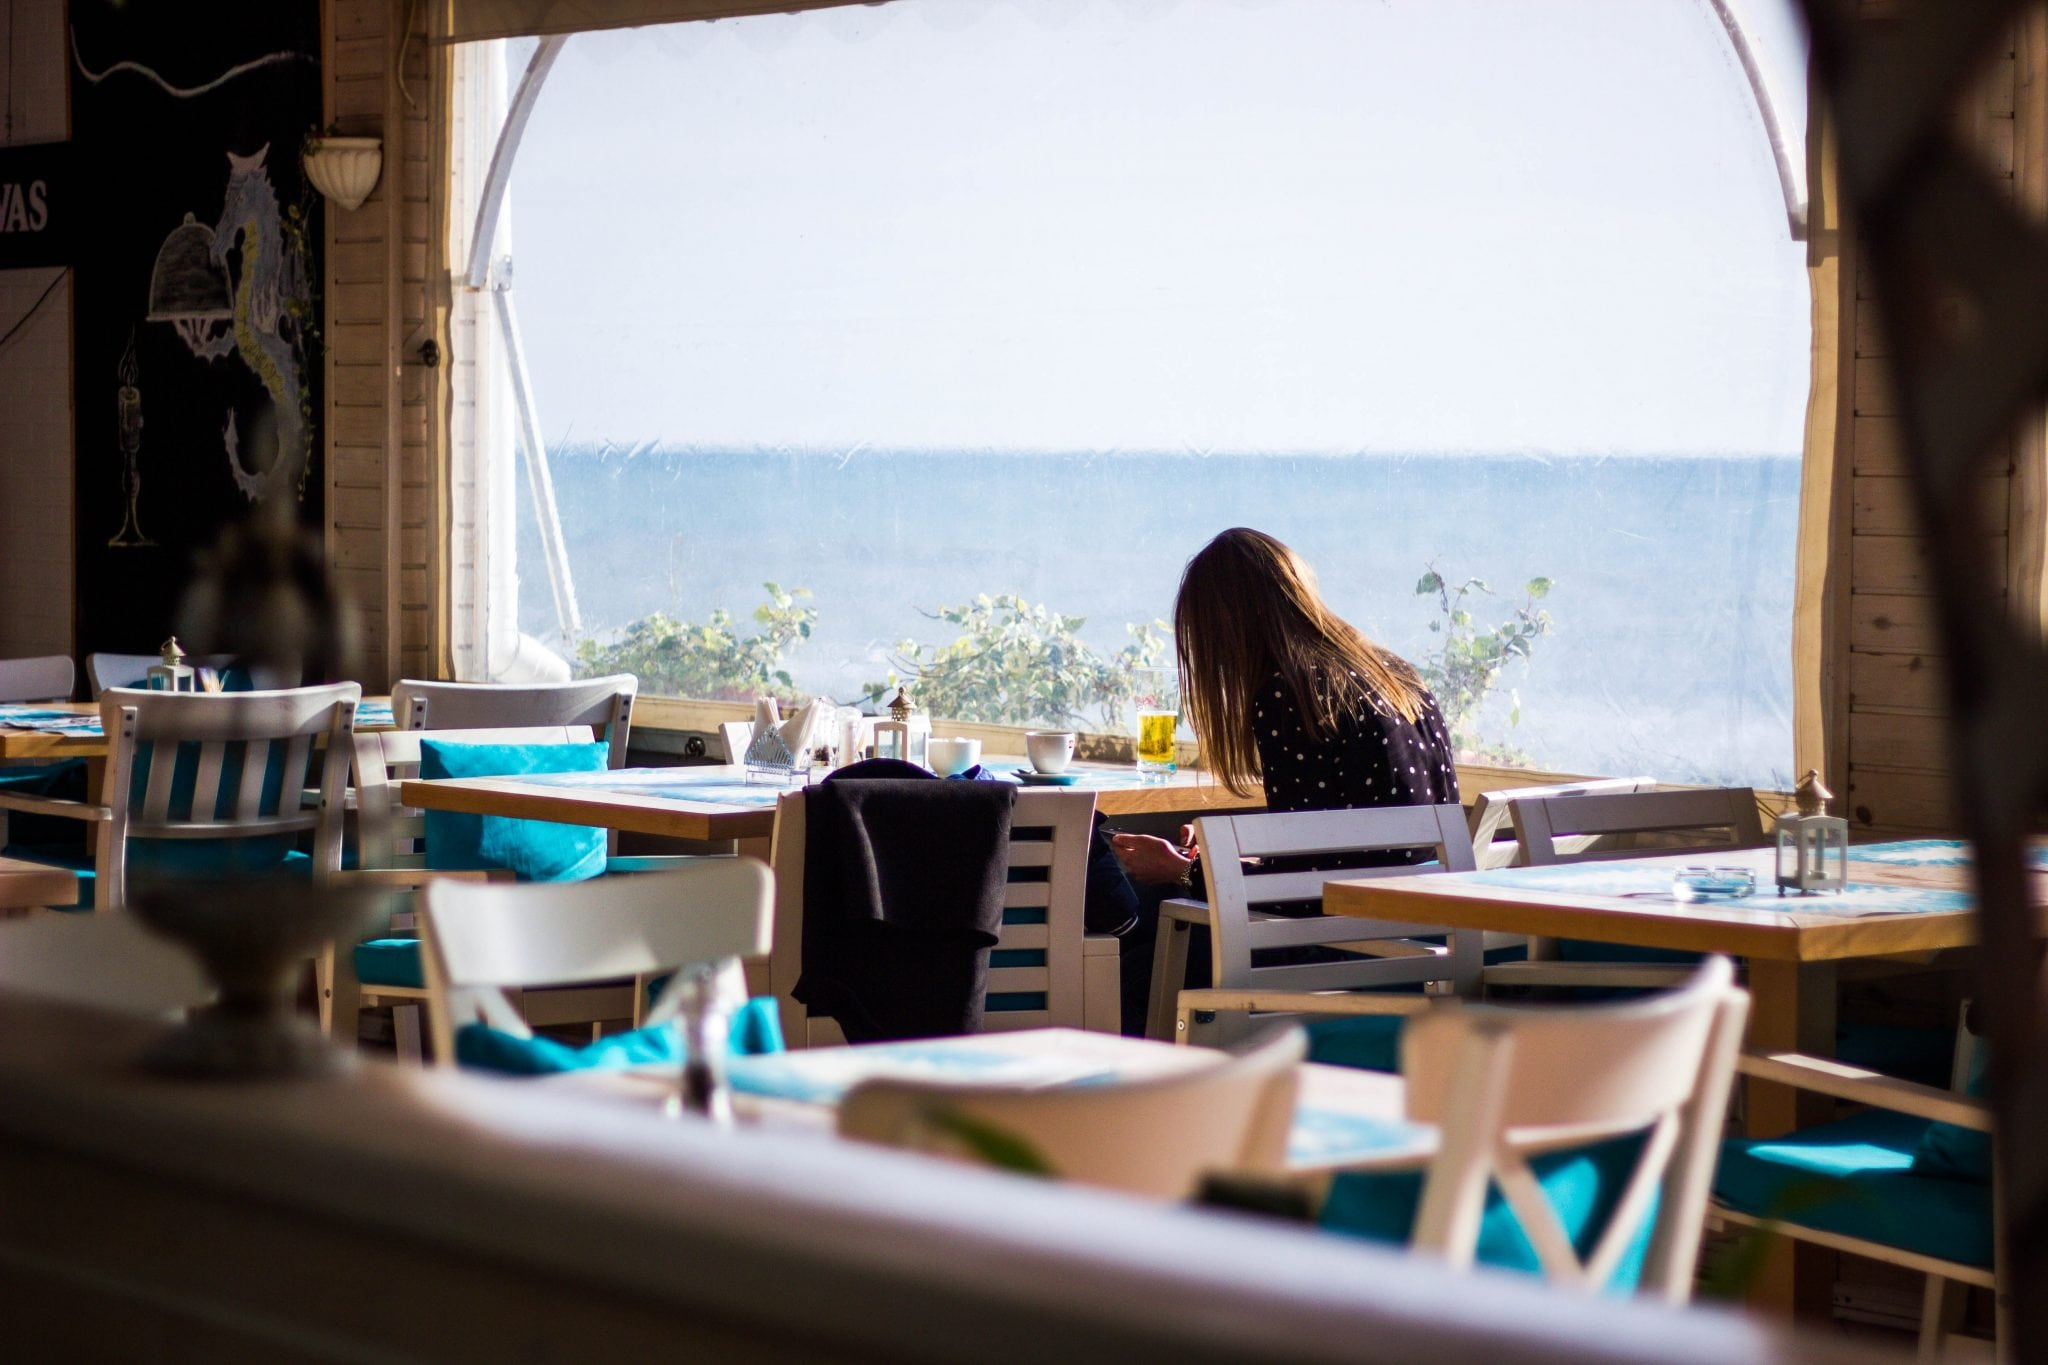 4 Quick Ways Restaurant Owners in Beach Towns Can Capitalize on Summer Vacationers